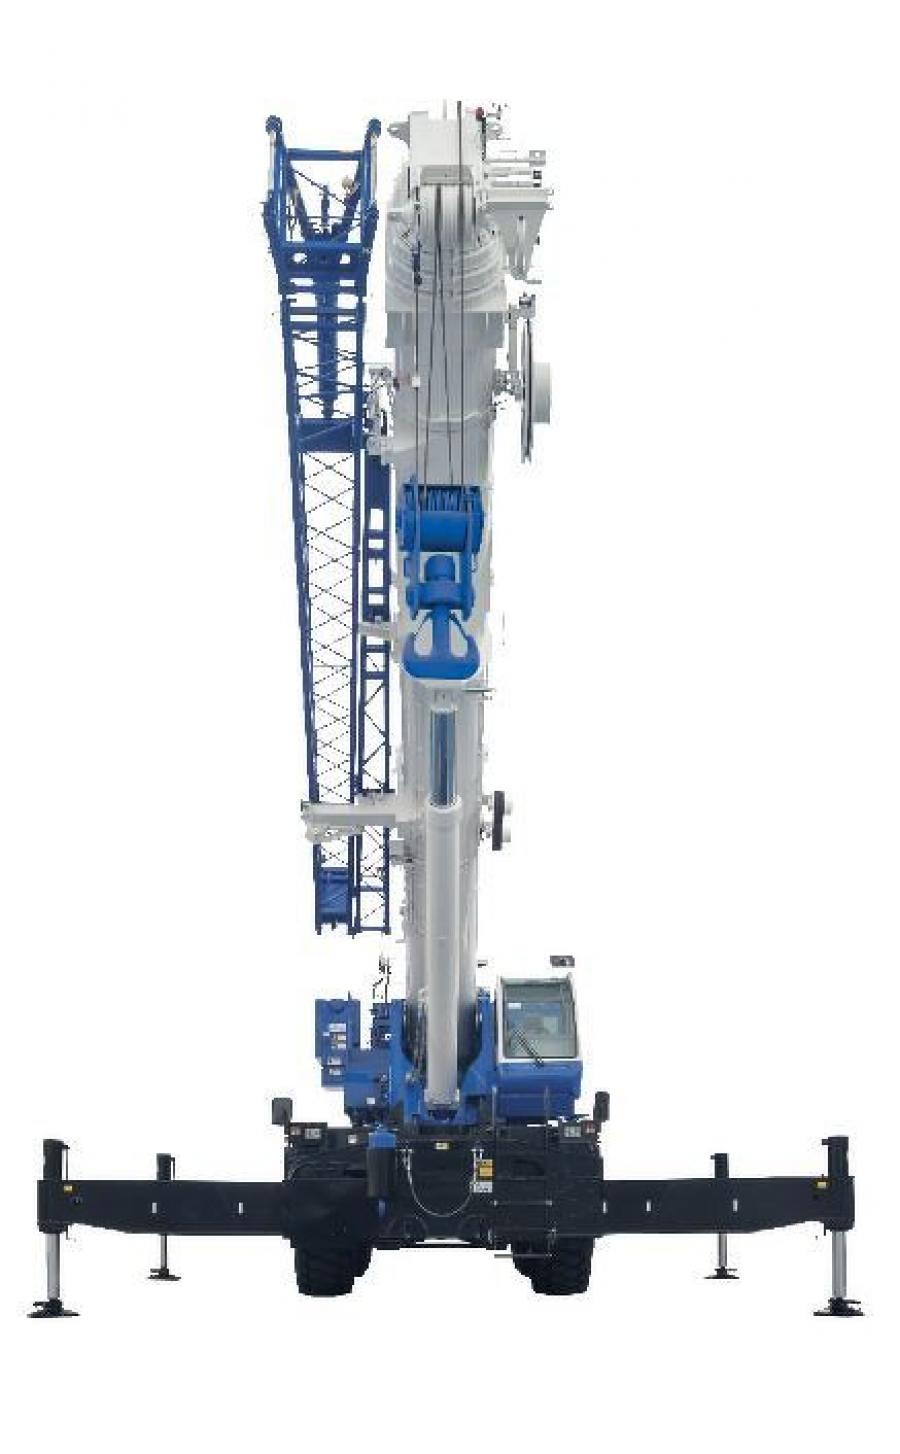 The Tadano GR-1600-XL rough terrain crane offers a hydraulic offset jib can be adjusted between 5 to 40 degrees by the jib tilt cylinder.